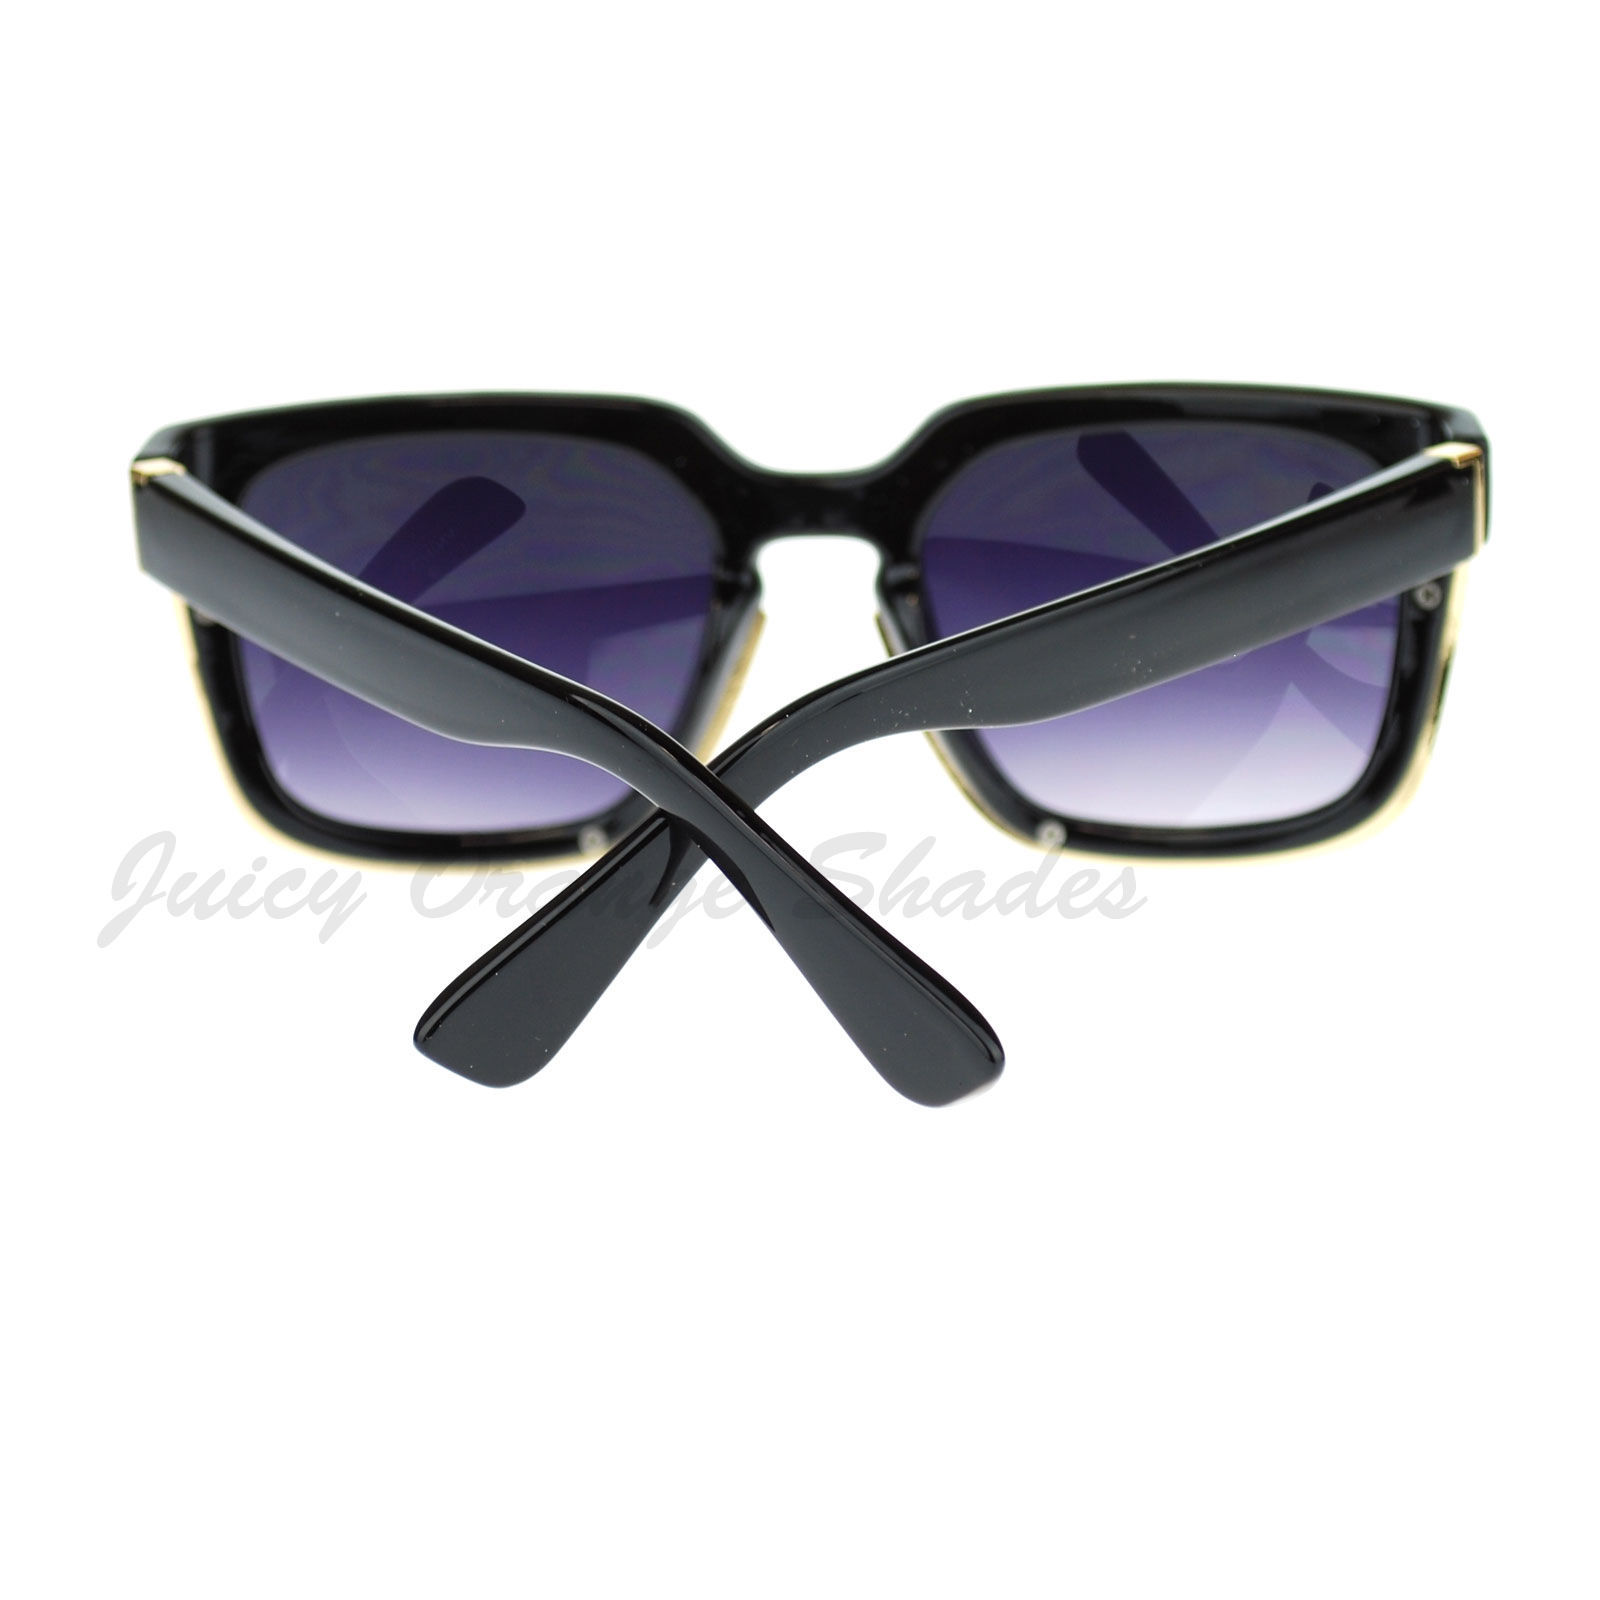 Unisex Hip Retro Sunglasses Metal Underlined Square Frame